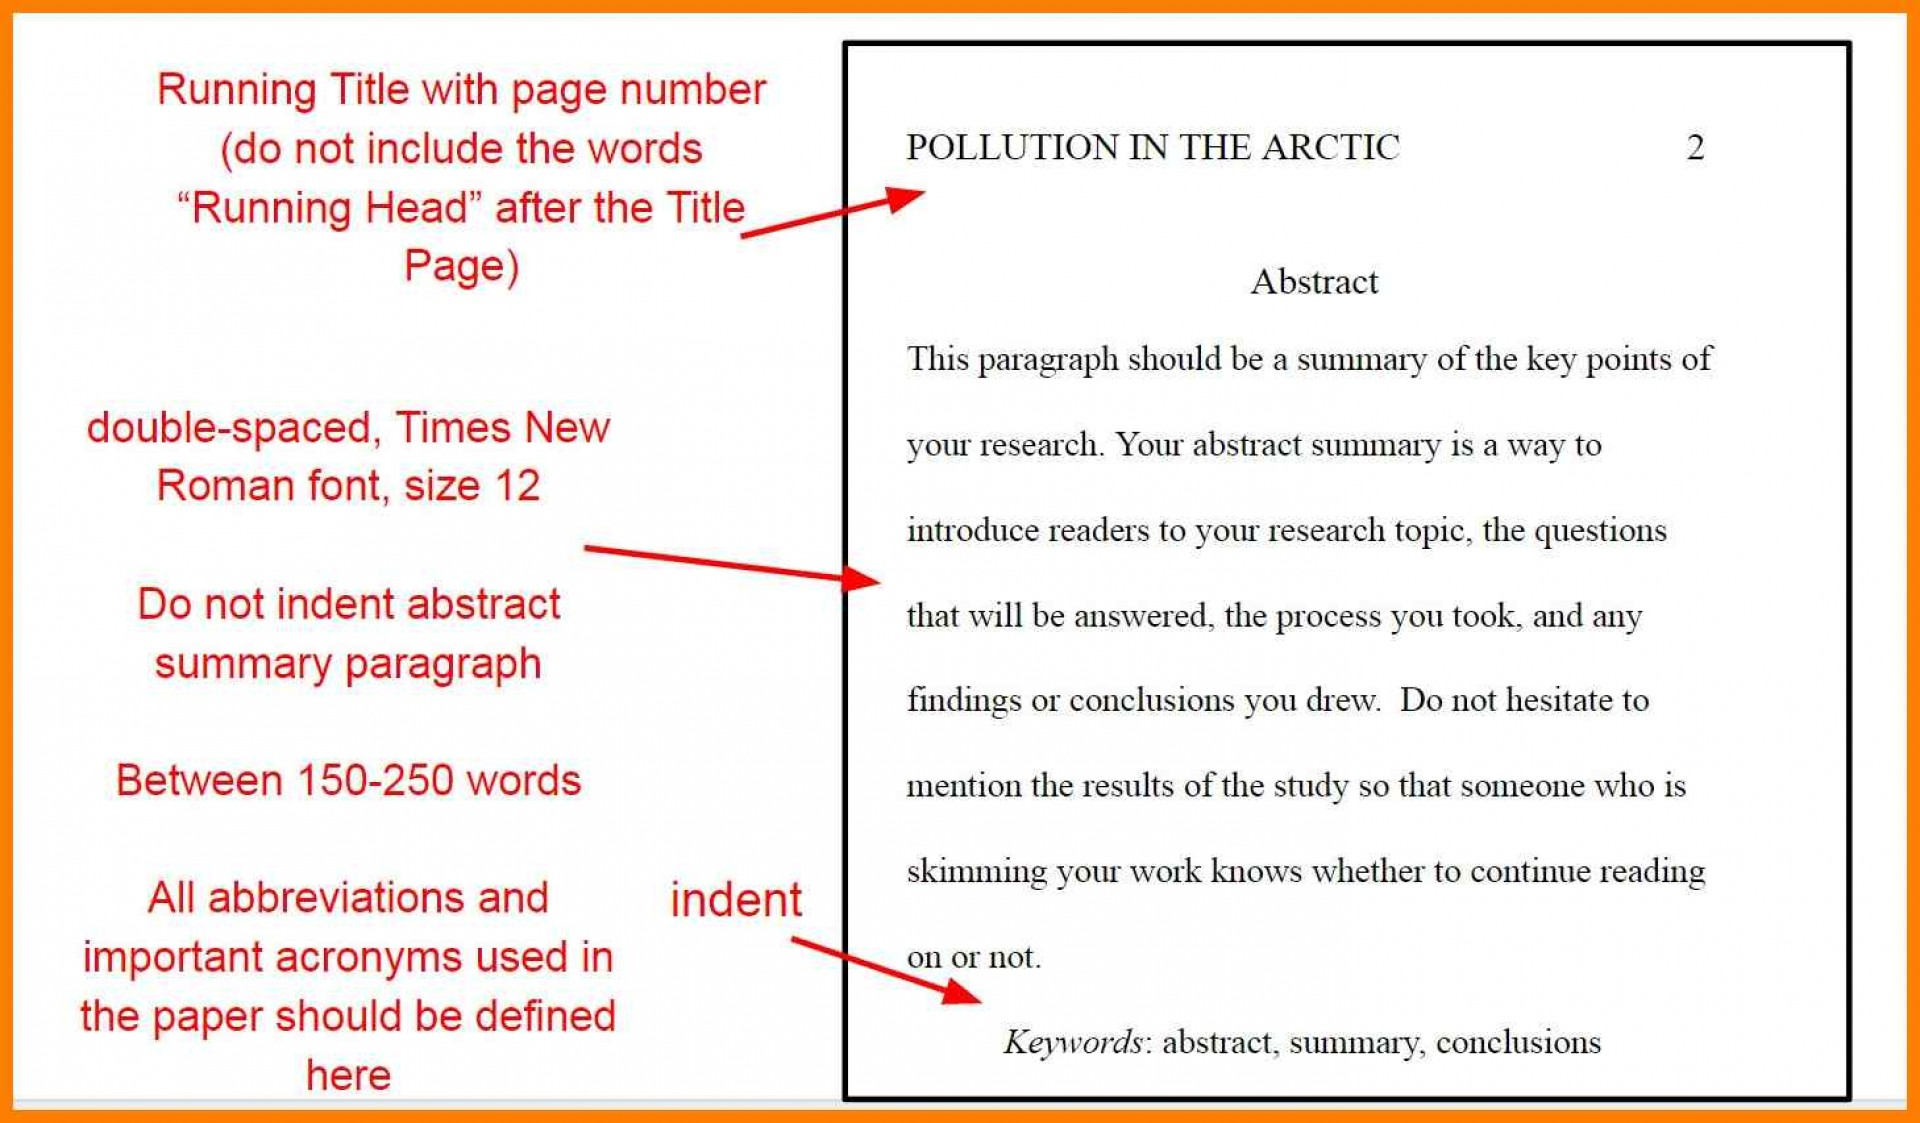 018 Apa Essay Format Apaabstractyo Font Size Stunning Formal 1920